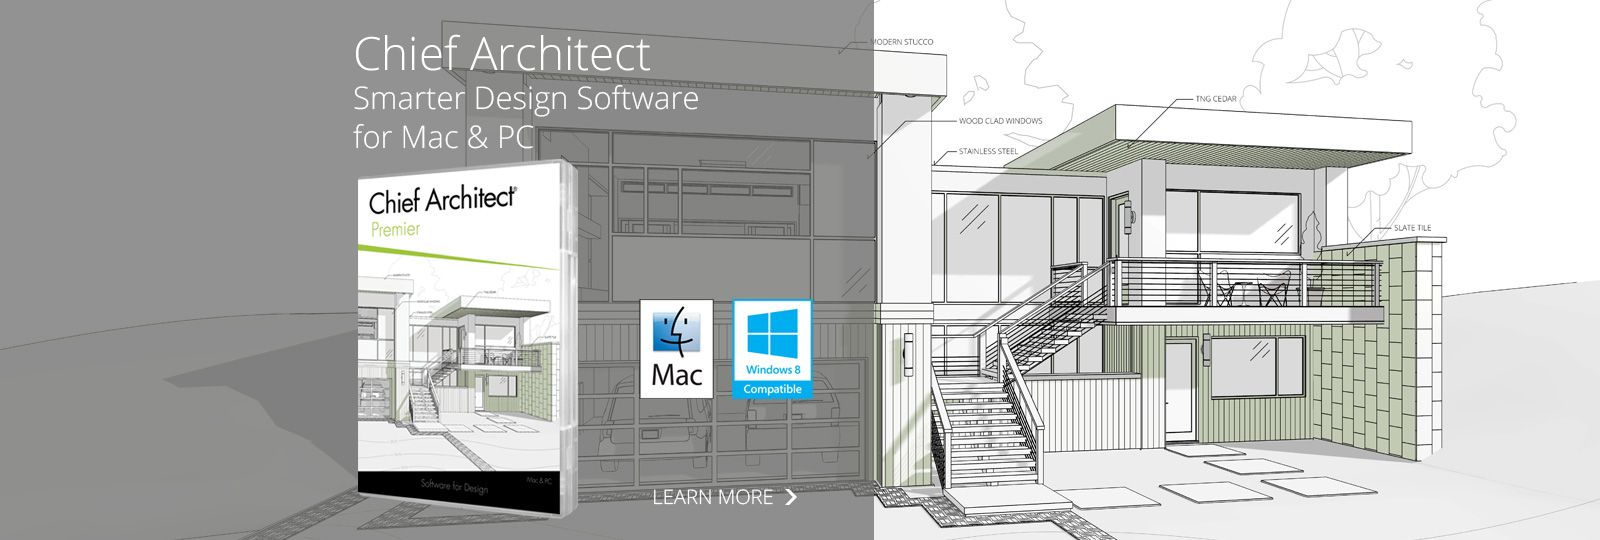 Chief Architect Professional 3D Architectural Home Design Software.  Automated Building Tools Make Home Design, Part 77